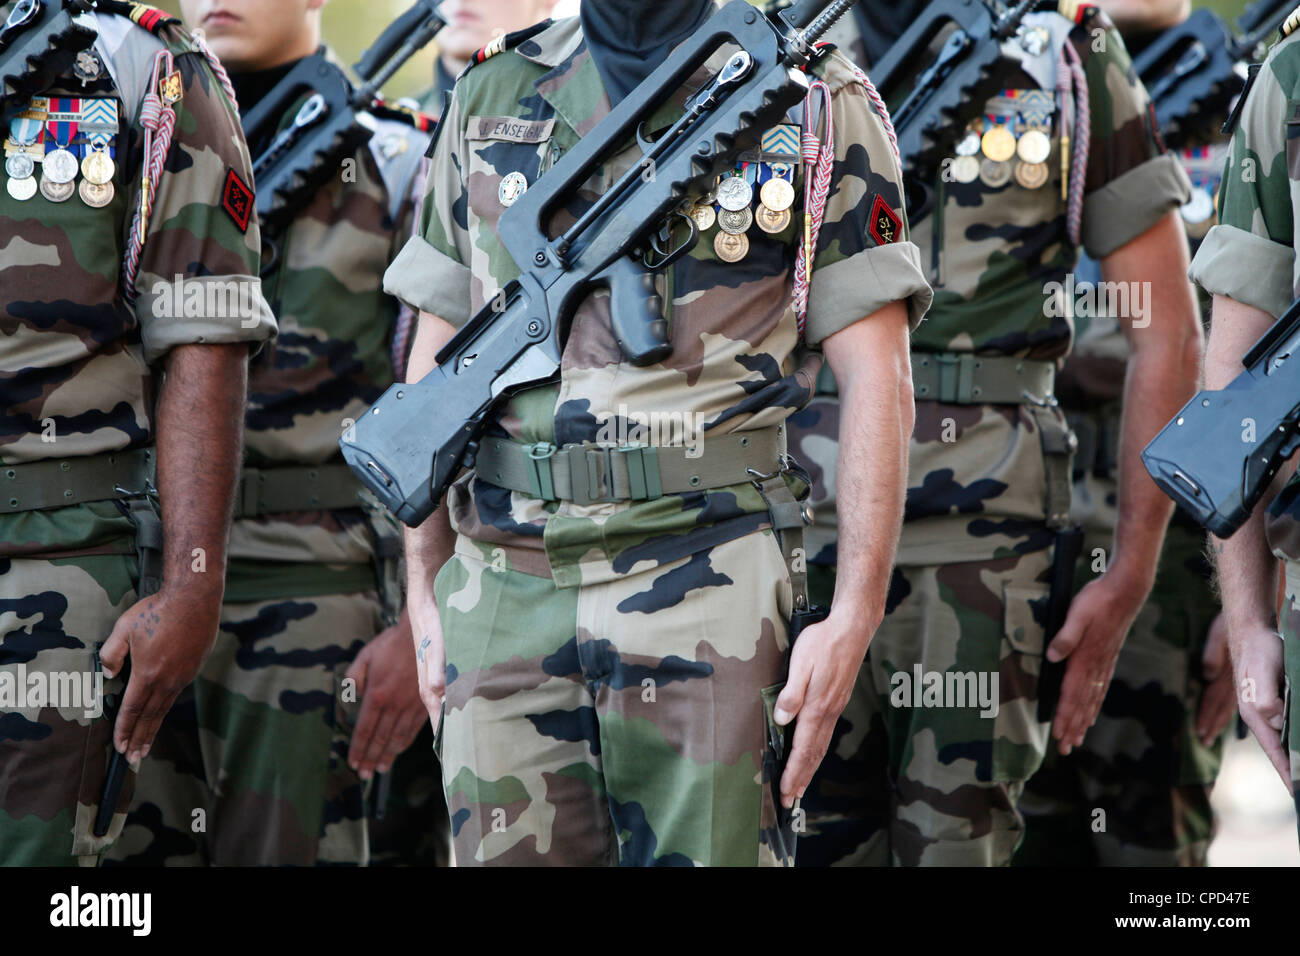 French soldiers, Paris, France, Europe - Stock Image